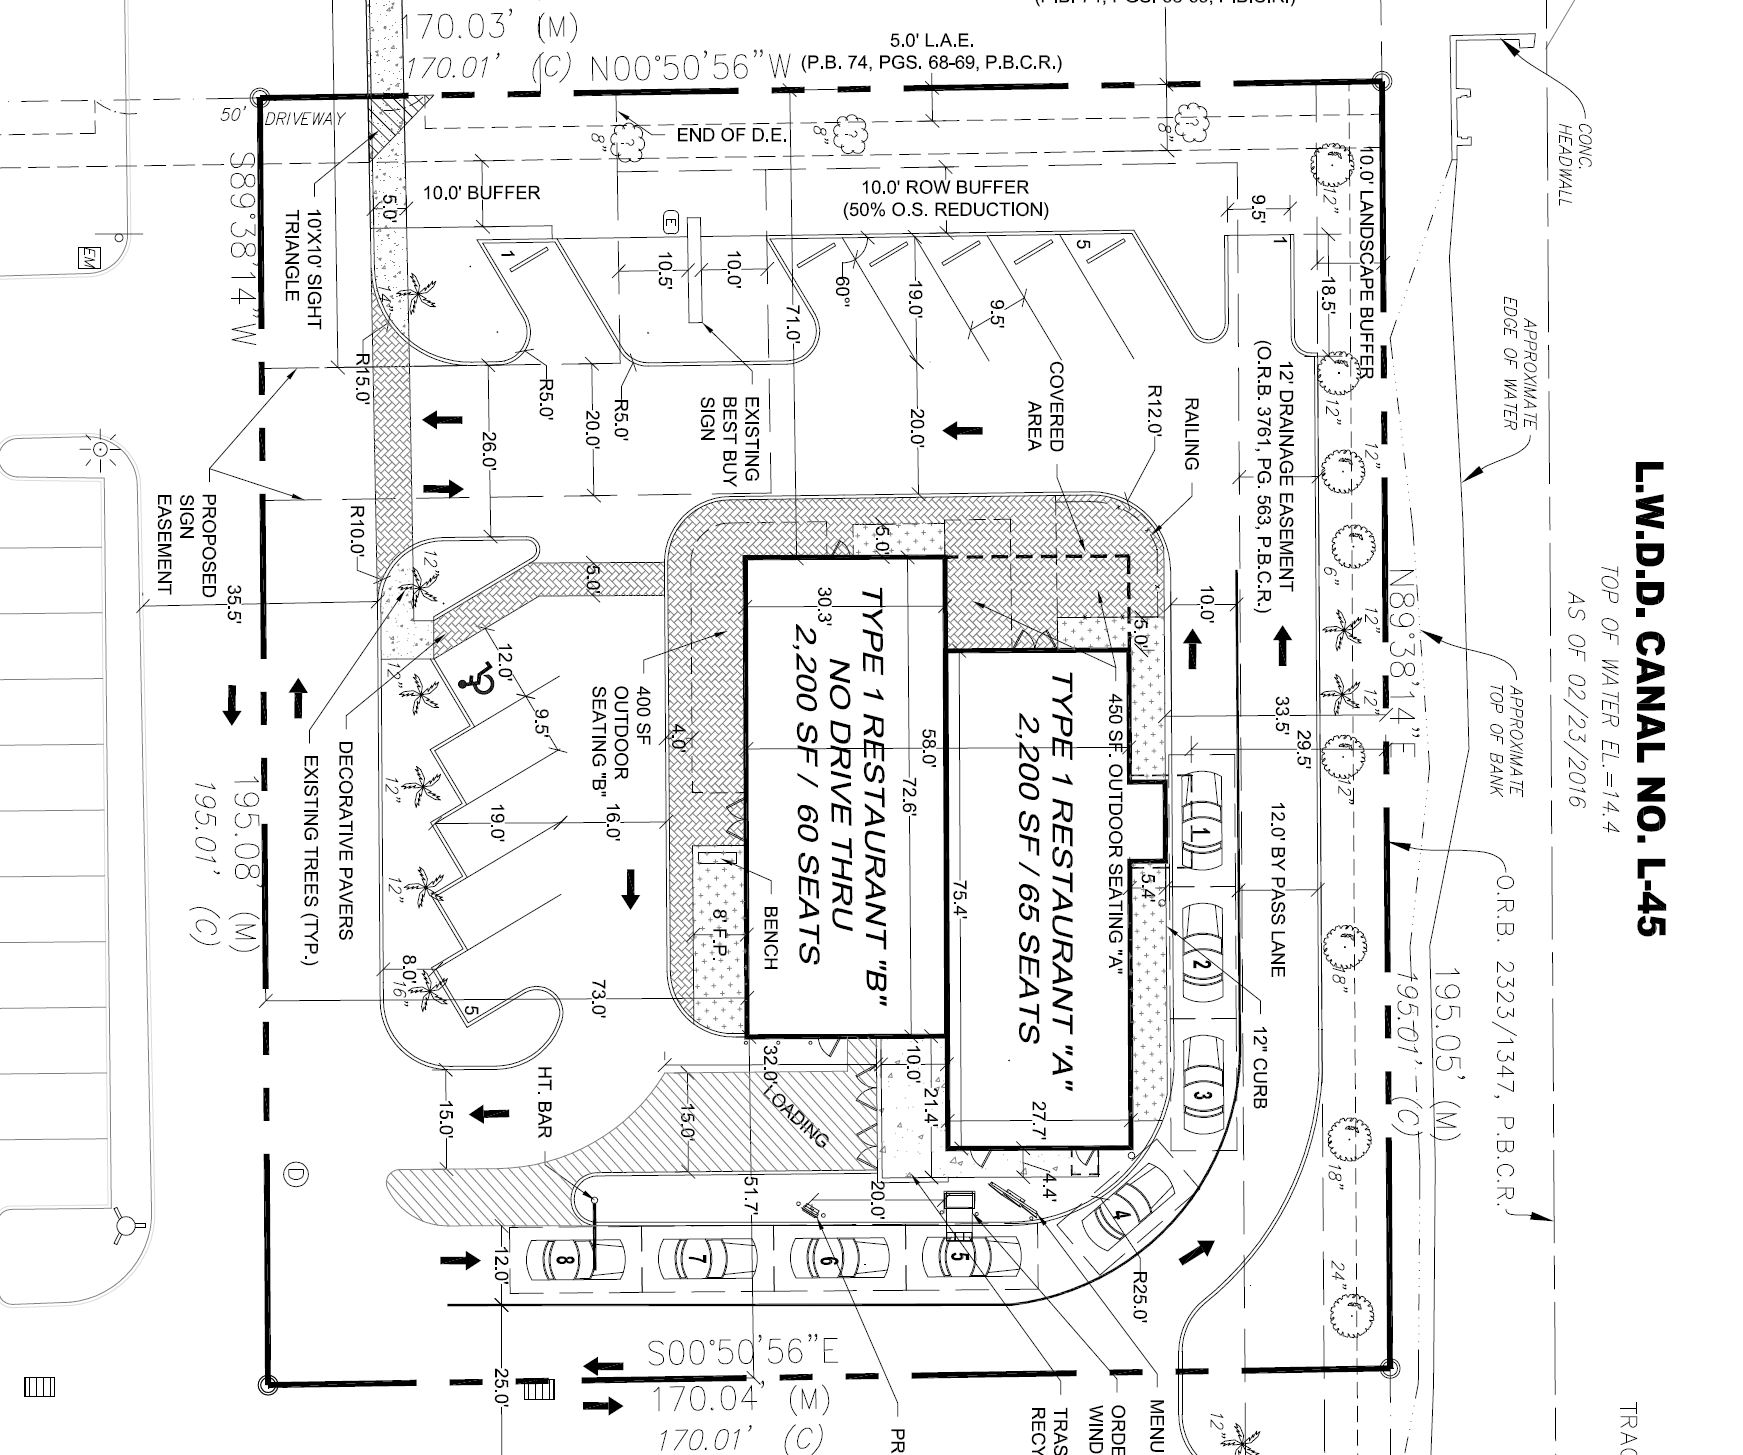 Toyota 4k Engine Diagram. Toyota. Auto Wiring Diagram